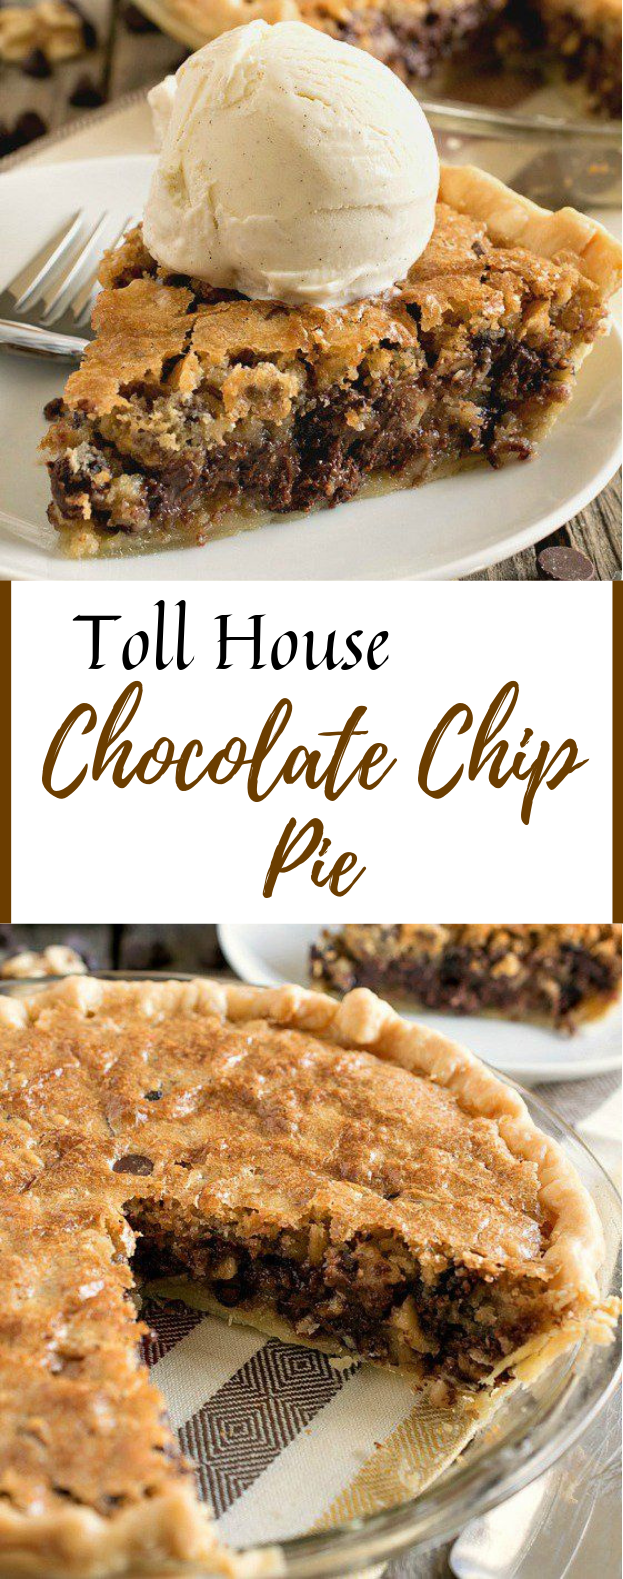 Toll House Chocolate Chip Pie #Pie #Dessert